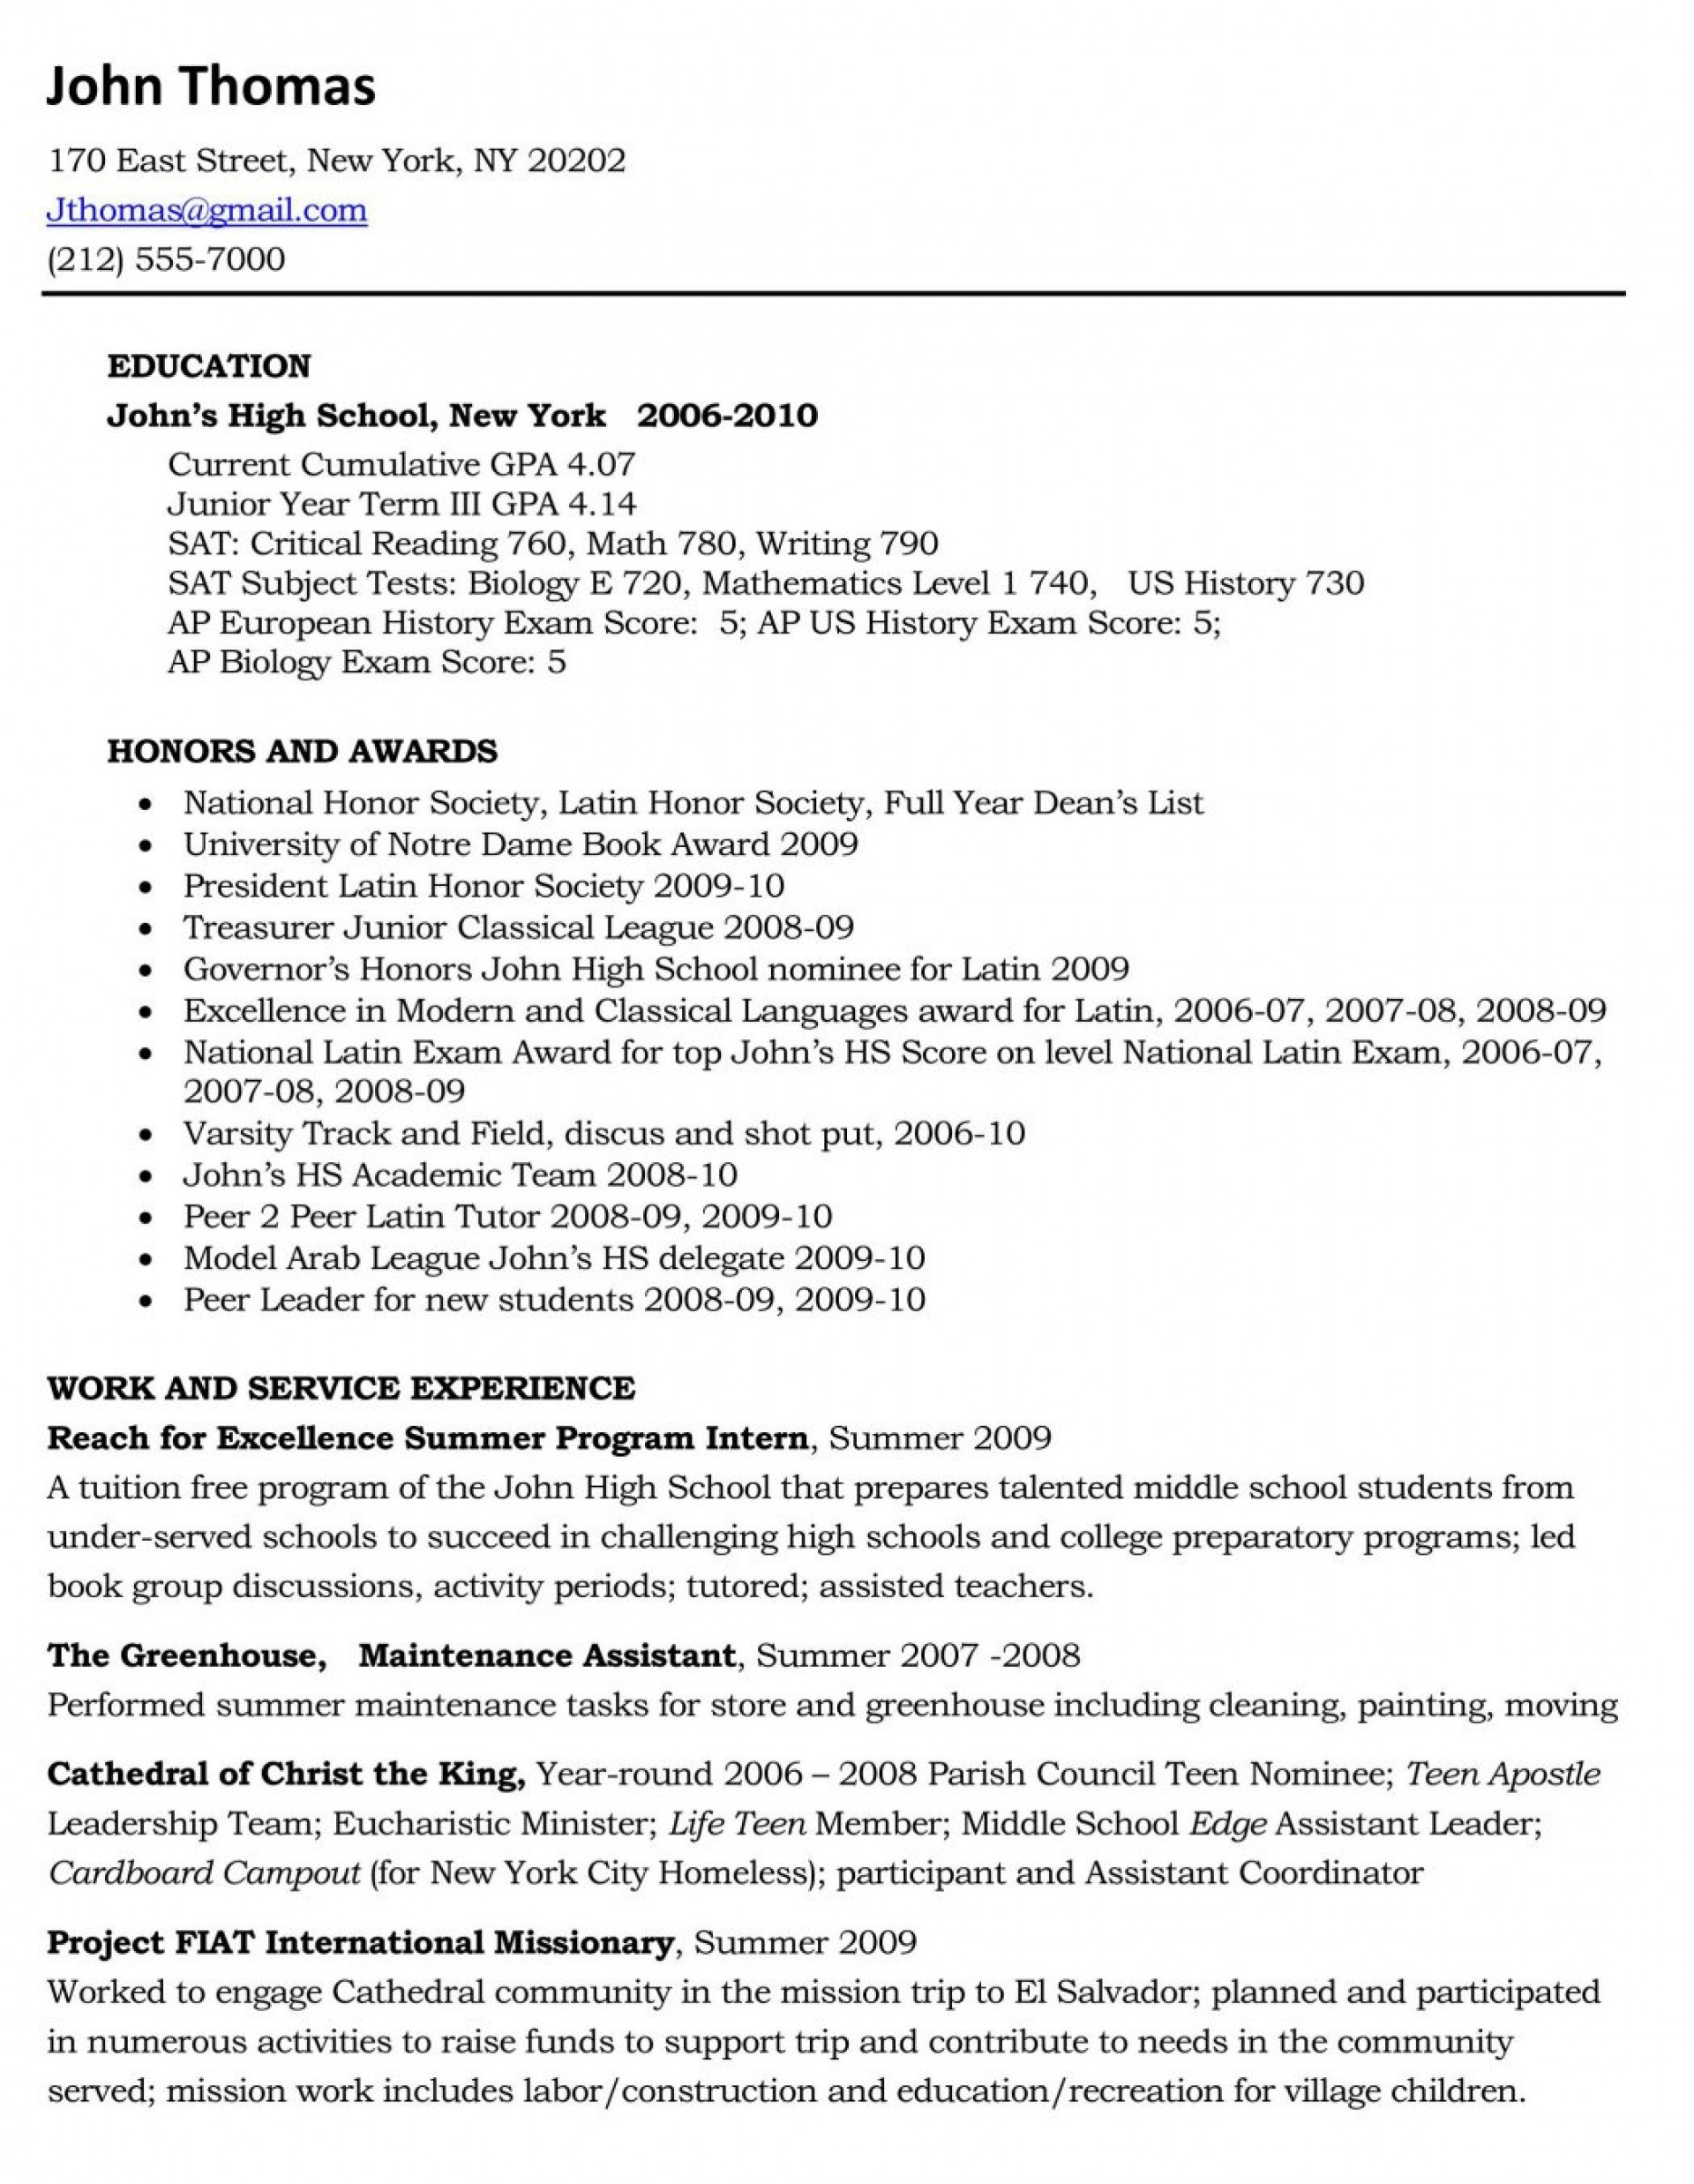 015 Mobile Phones Should Banned In Schools Essay Example On Texting Resume Jpg Cell Cellphones Schoolment Not Allowed Pdf Introduction Unique Be Argumentative 1920